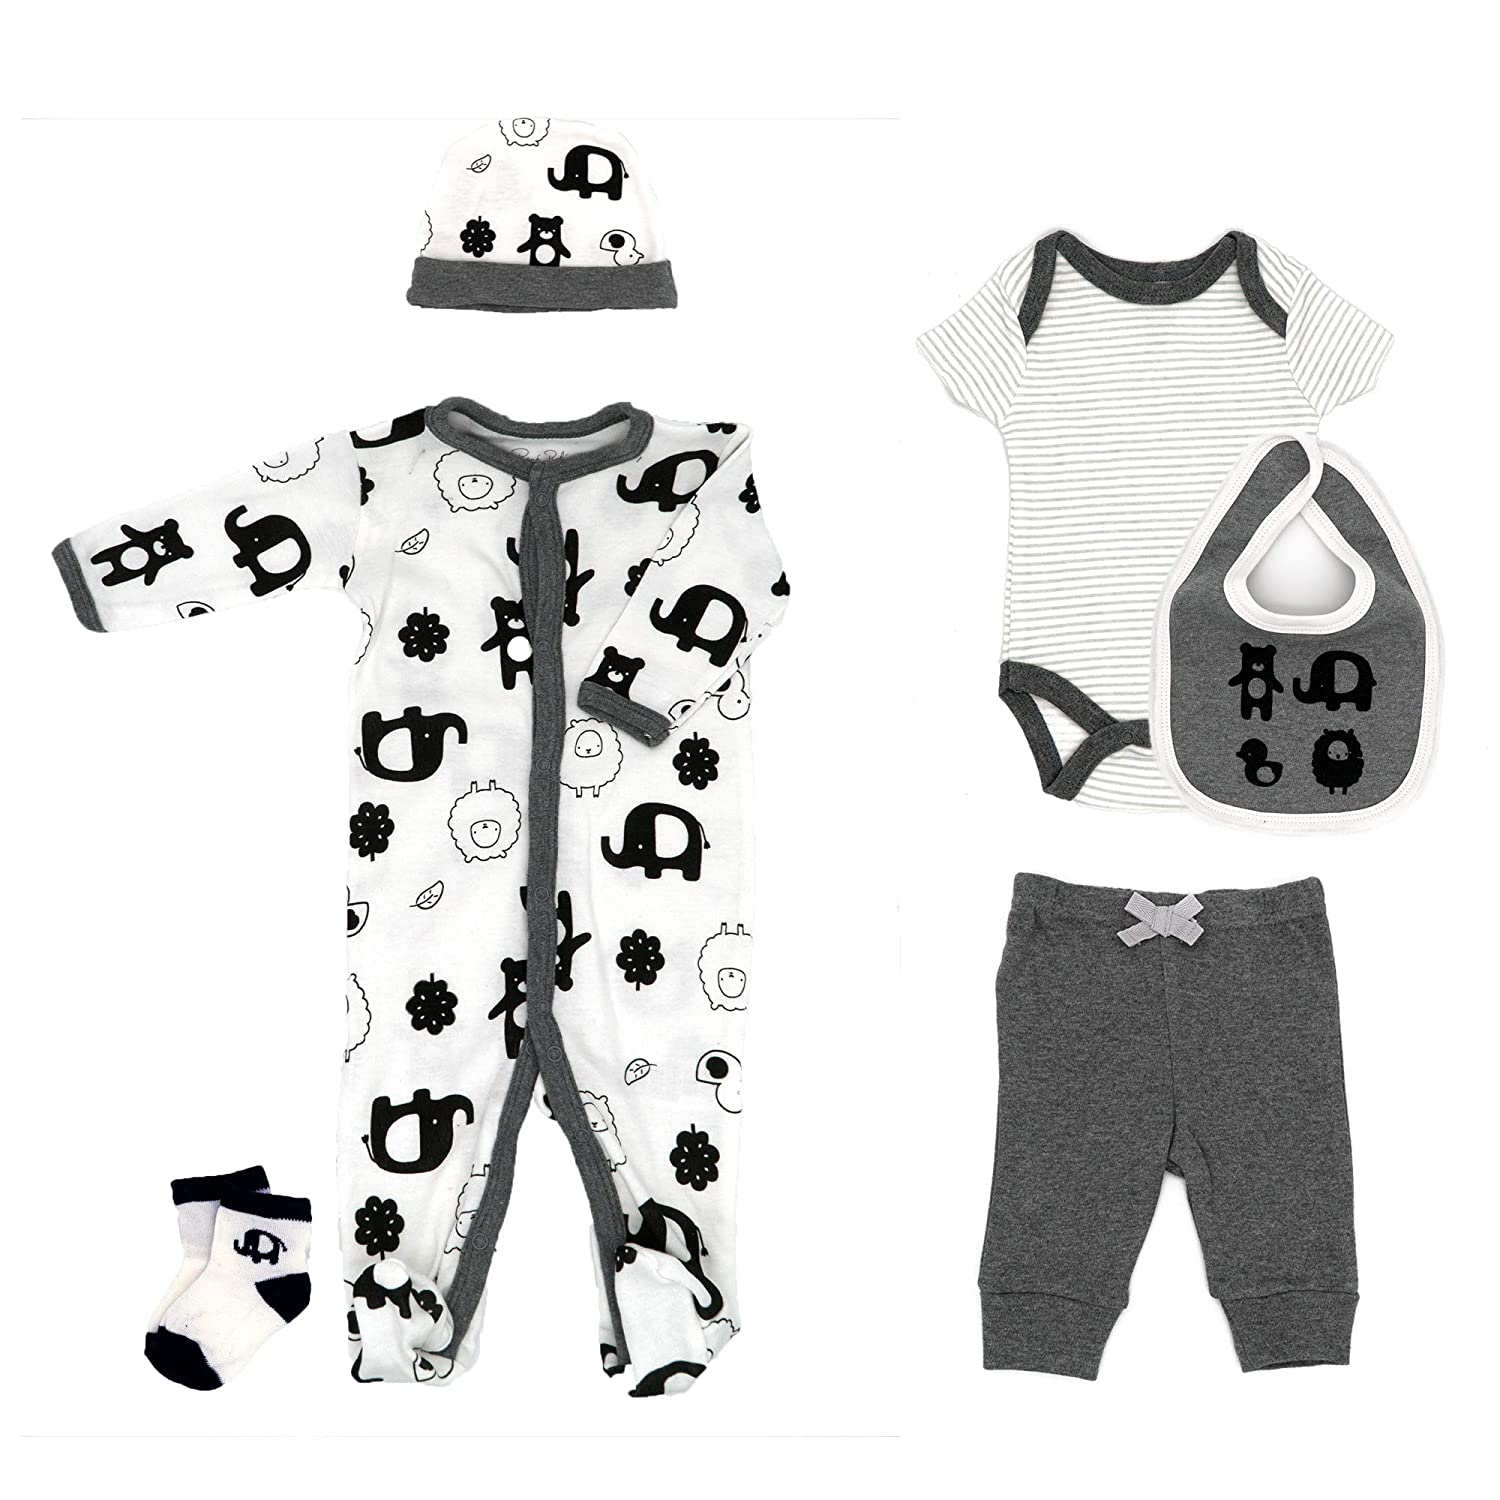 Bib Cap and Socks Pant Coverall 6 Piece Set Bodysuit